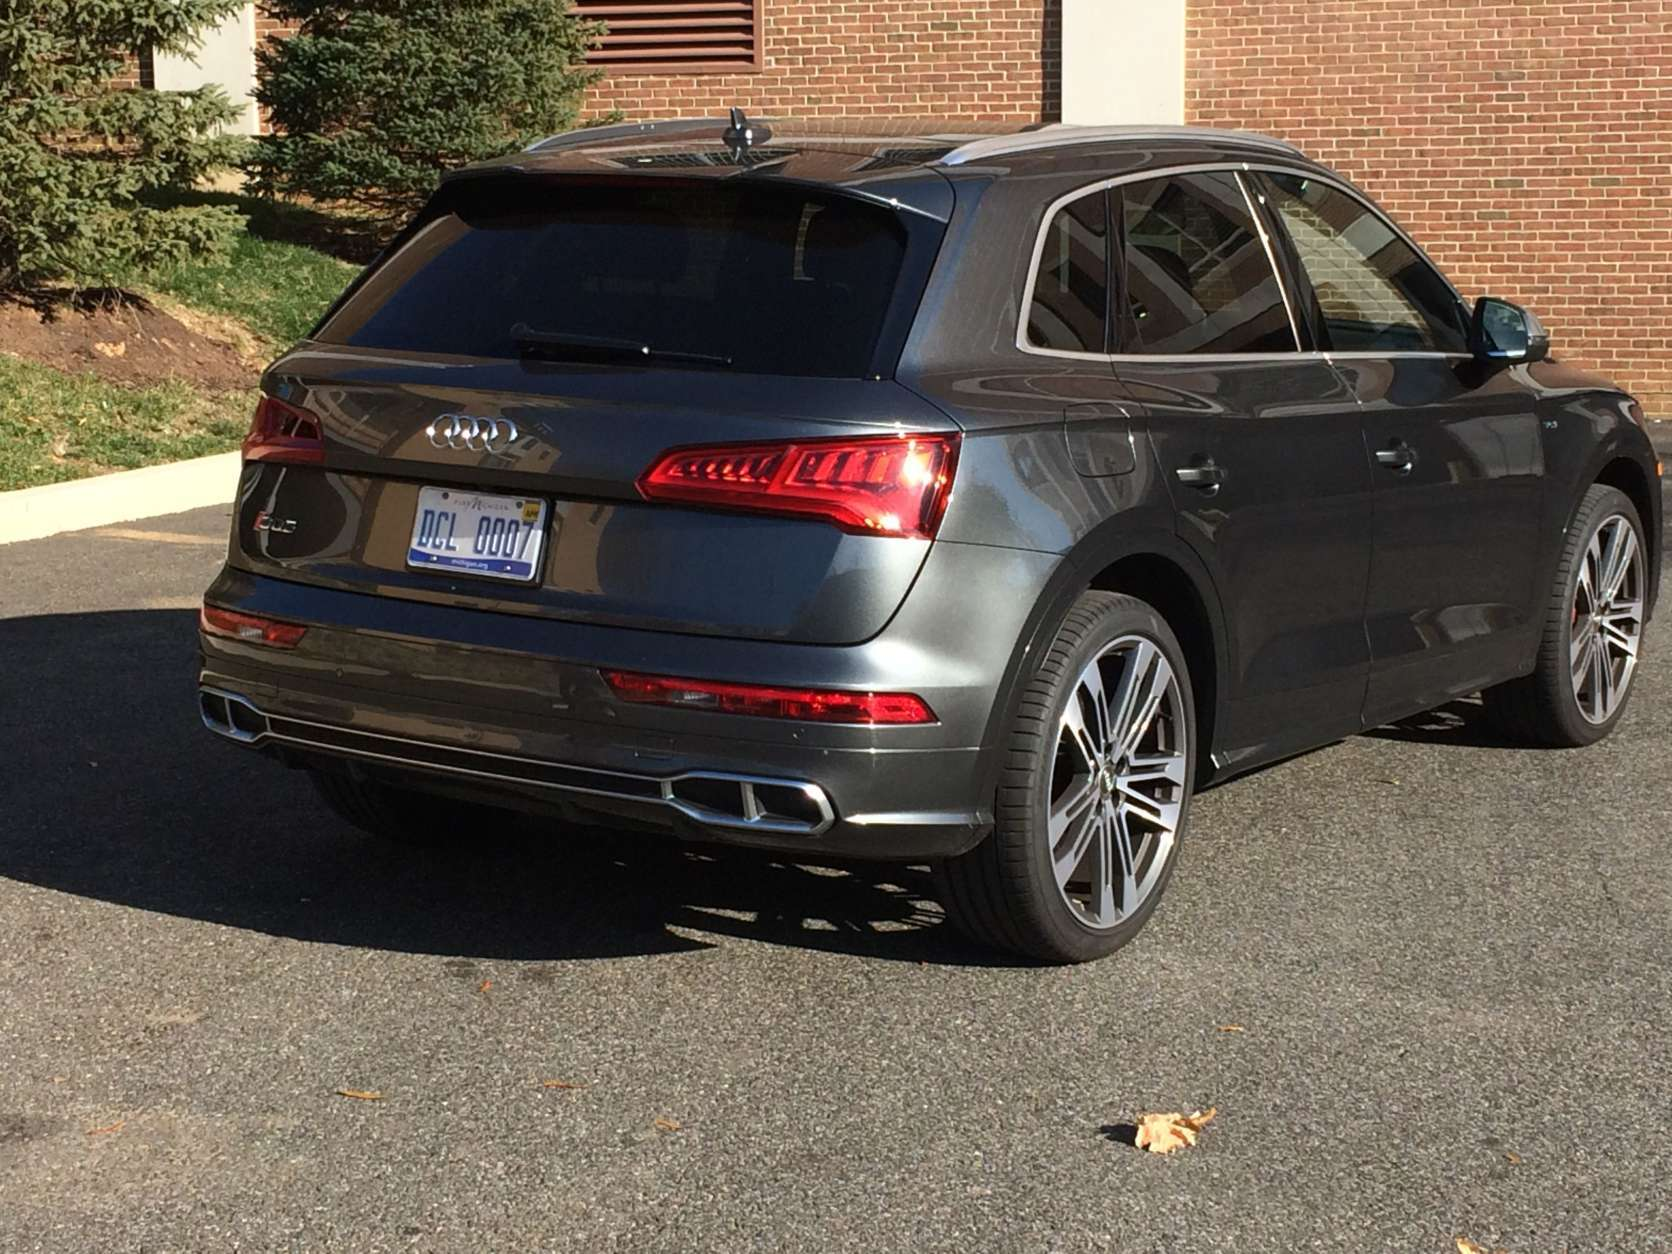 """A lower body treatment makes the SQ5 look hunkered down and closer to the road than the regular Q5, giving it a sportier look. Out back, the quad exhaust tips announce """"this is a crossover with an attitude,"""" but that's about the only giveaway other than the SQ5 badge. (WTOP/Mike Parris)"""